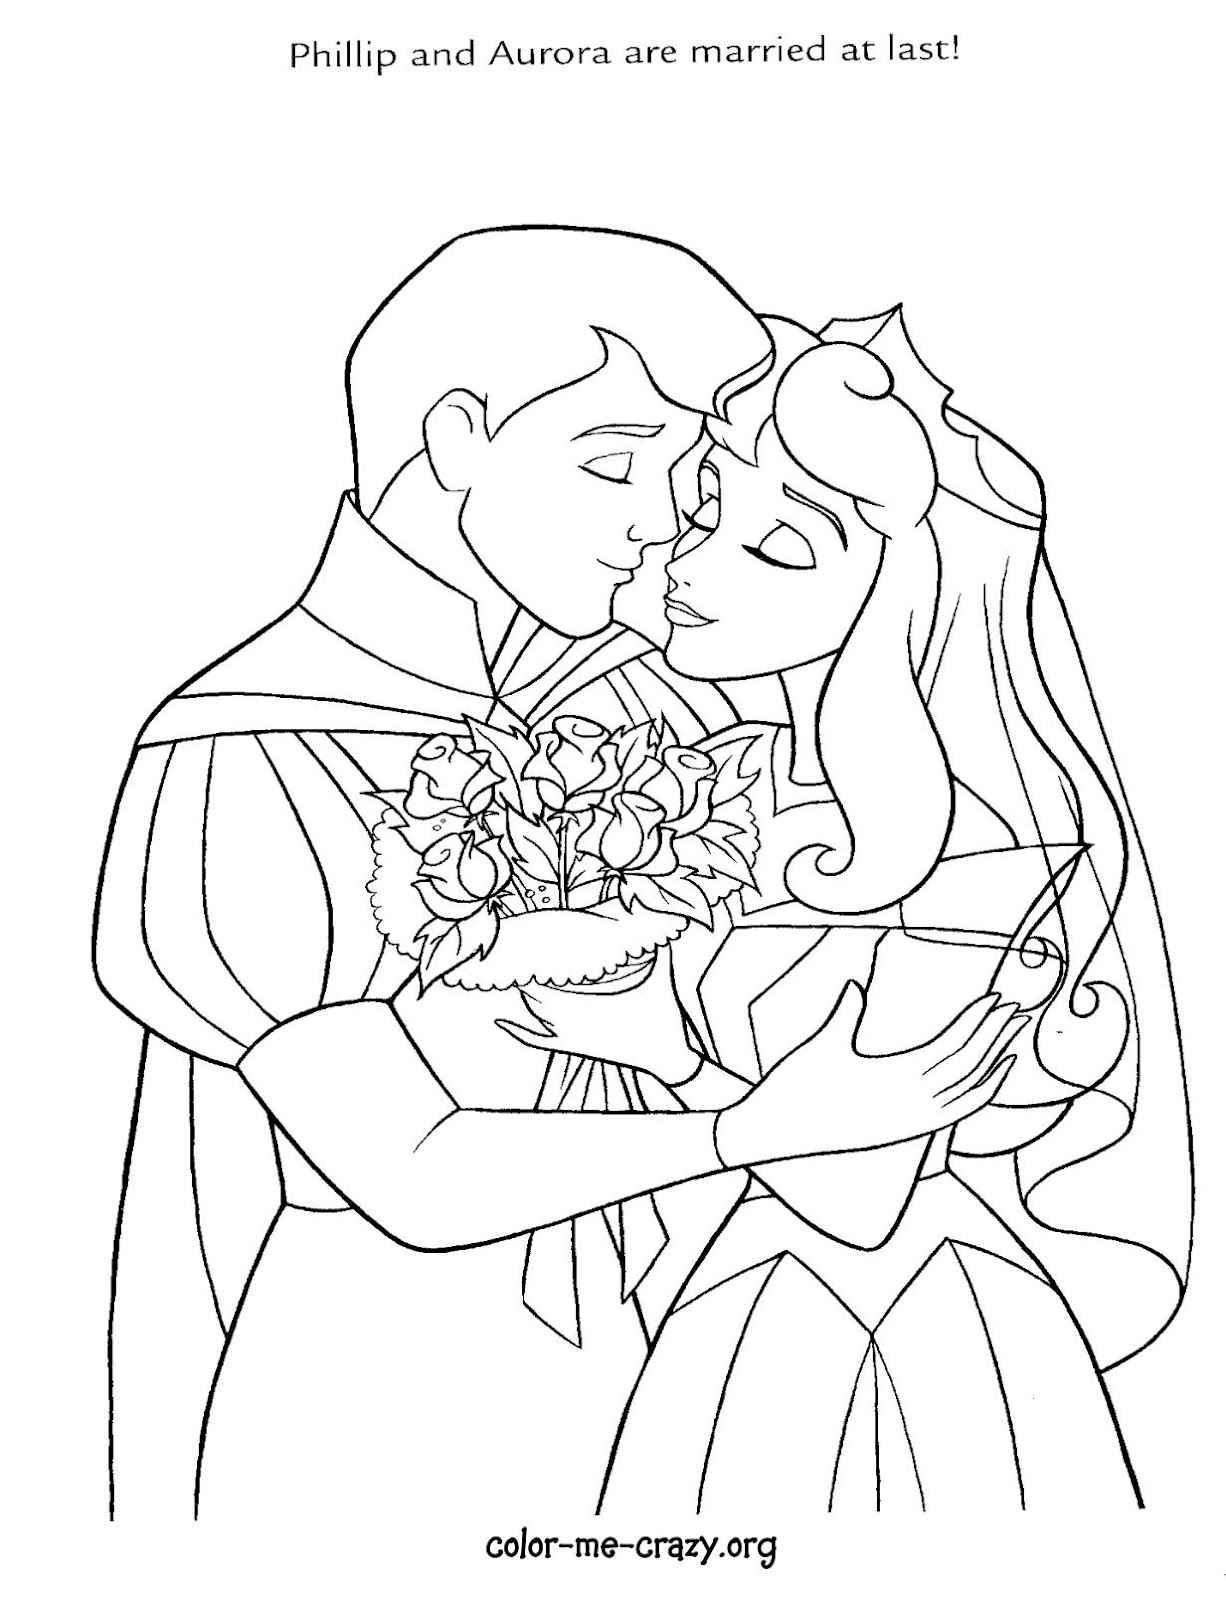 ColorMeCrazy.org: Disney Wedding Wishes